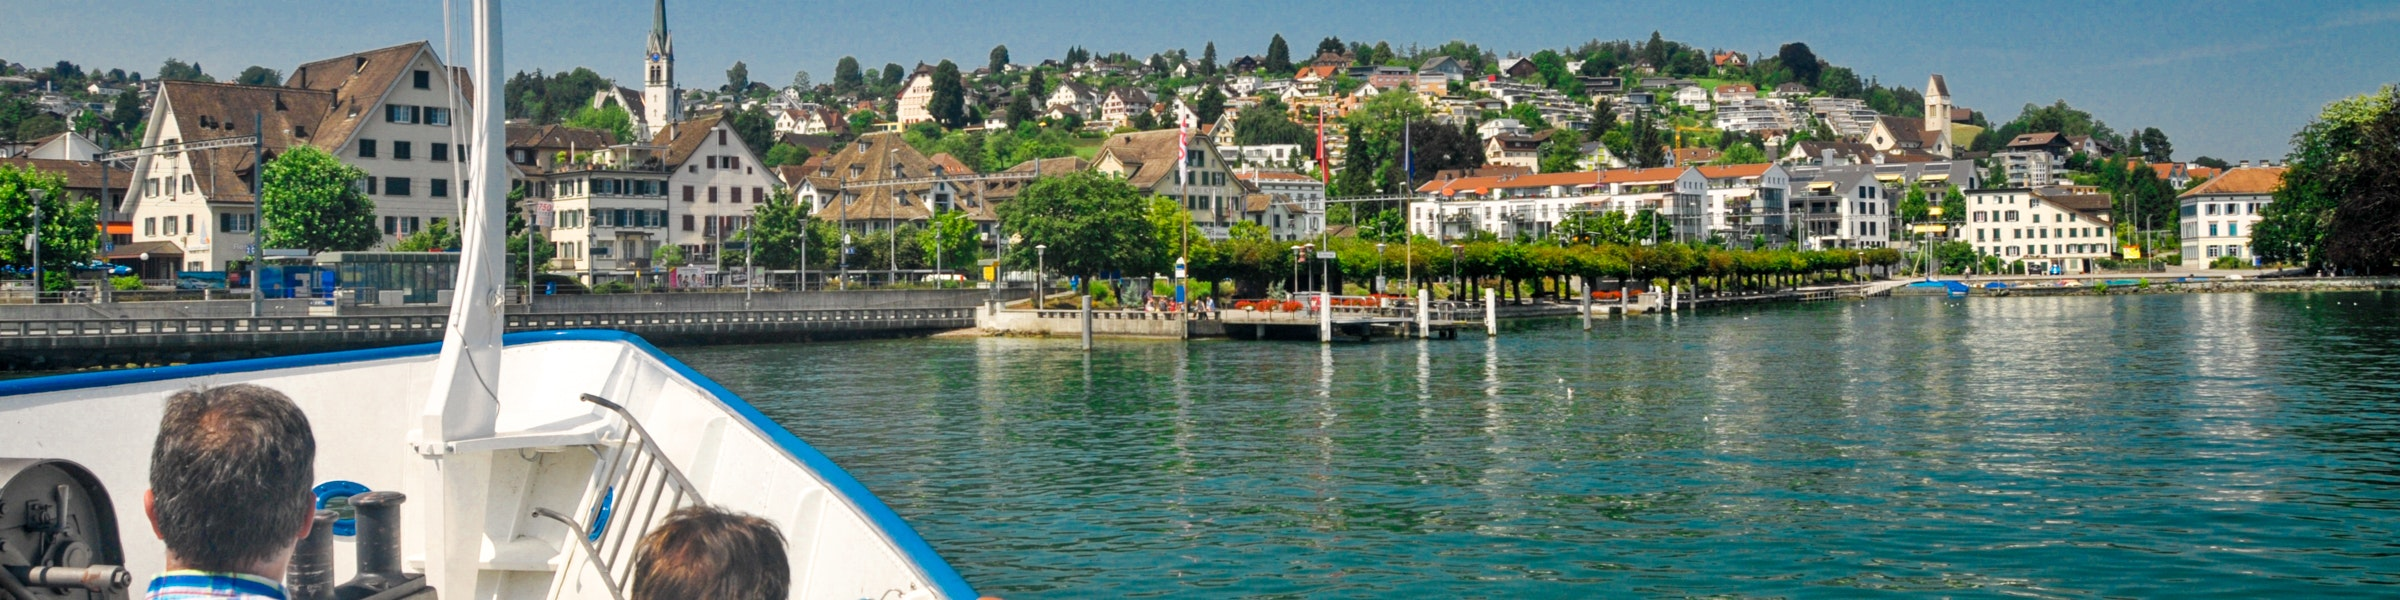 Boat trip on Lake Zurich